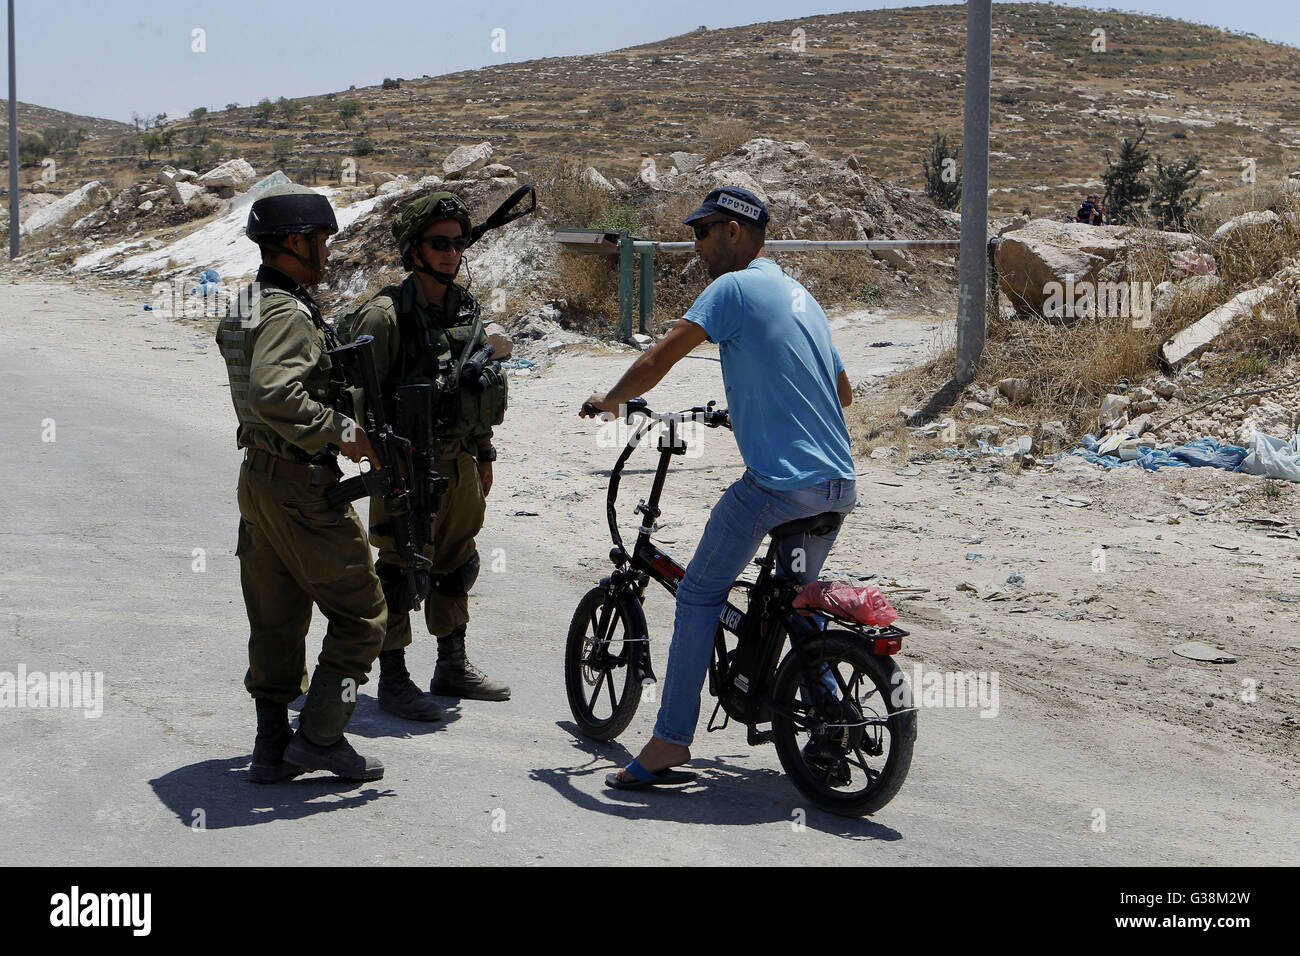 June 9, 2016 - Hebron, West Bank, Palestinian Territory - Israeli soldiers stop a Palestinian on his bicycle at - Stock Image